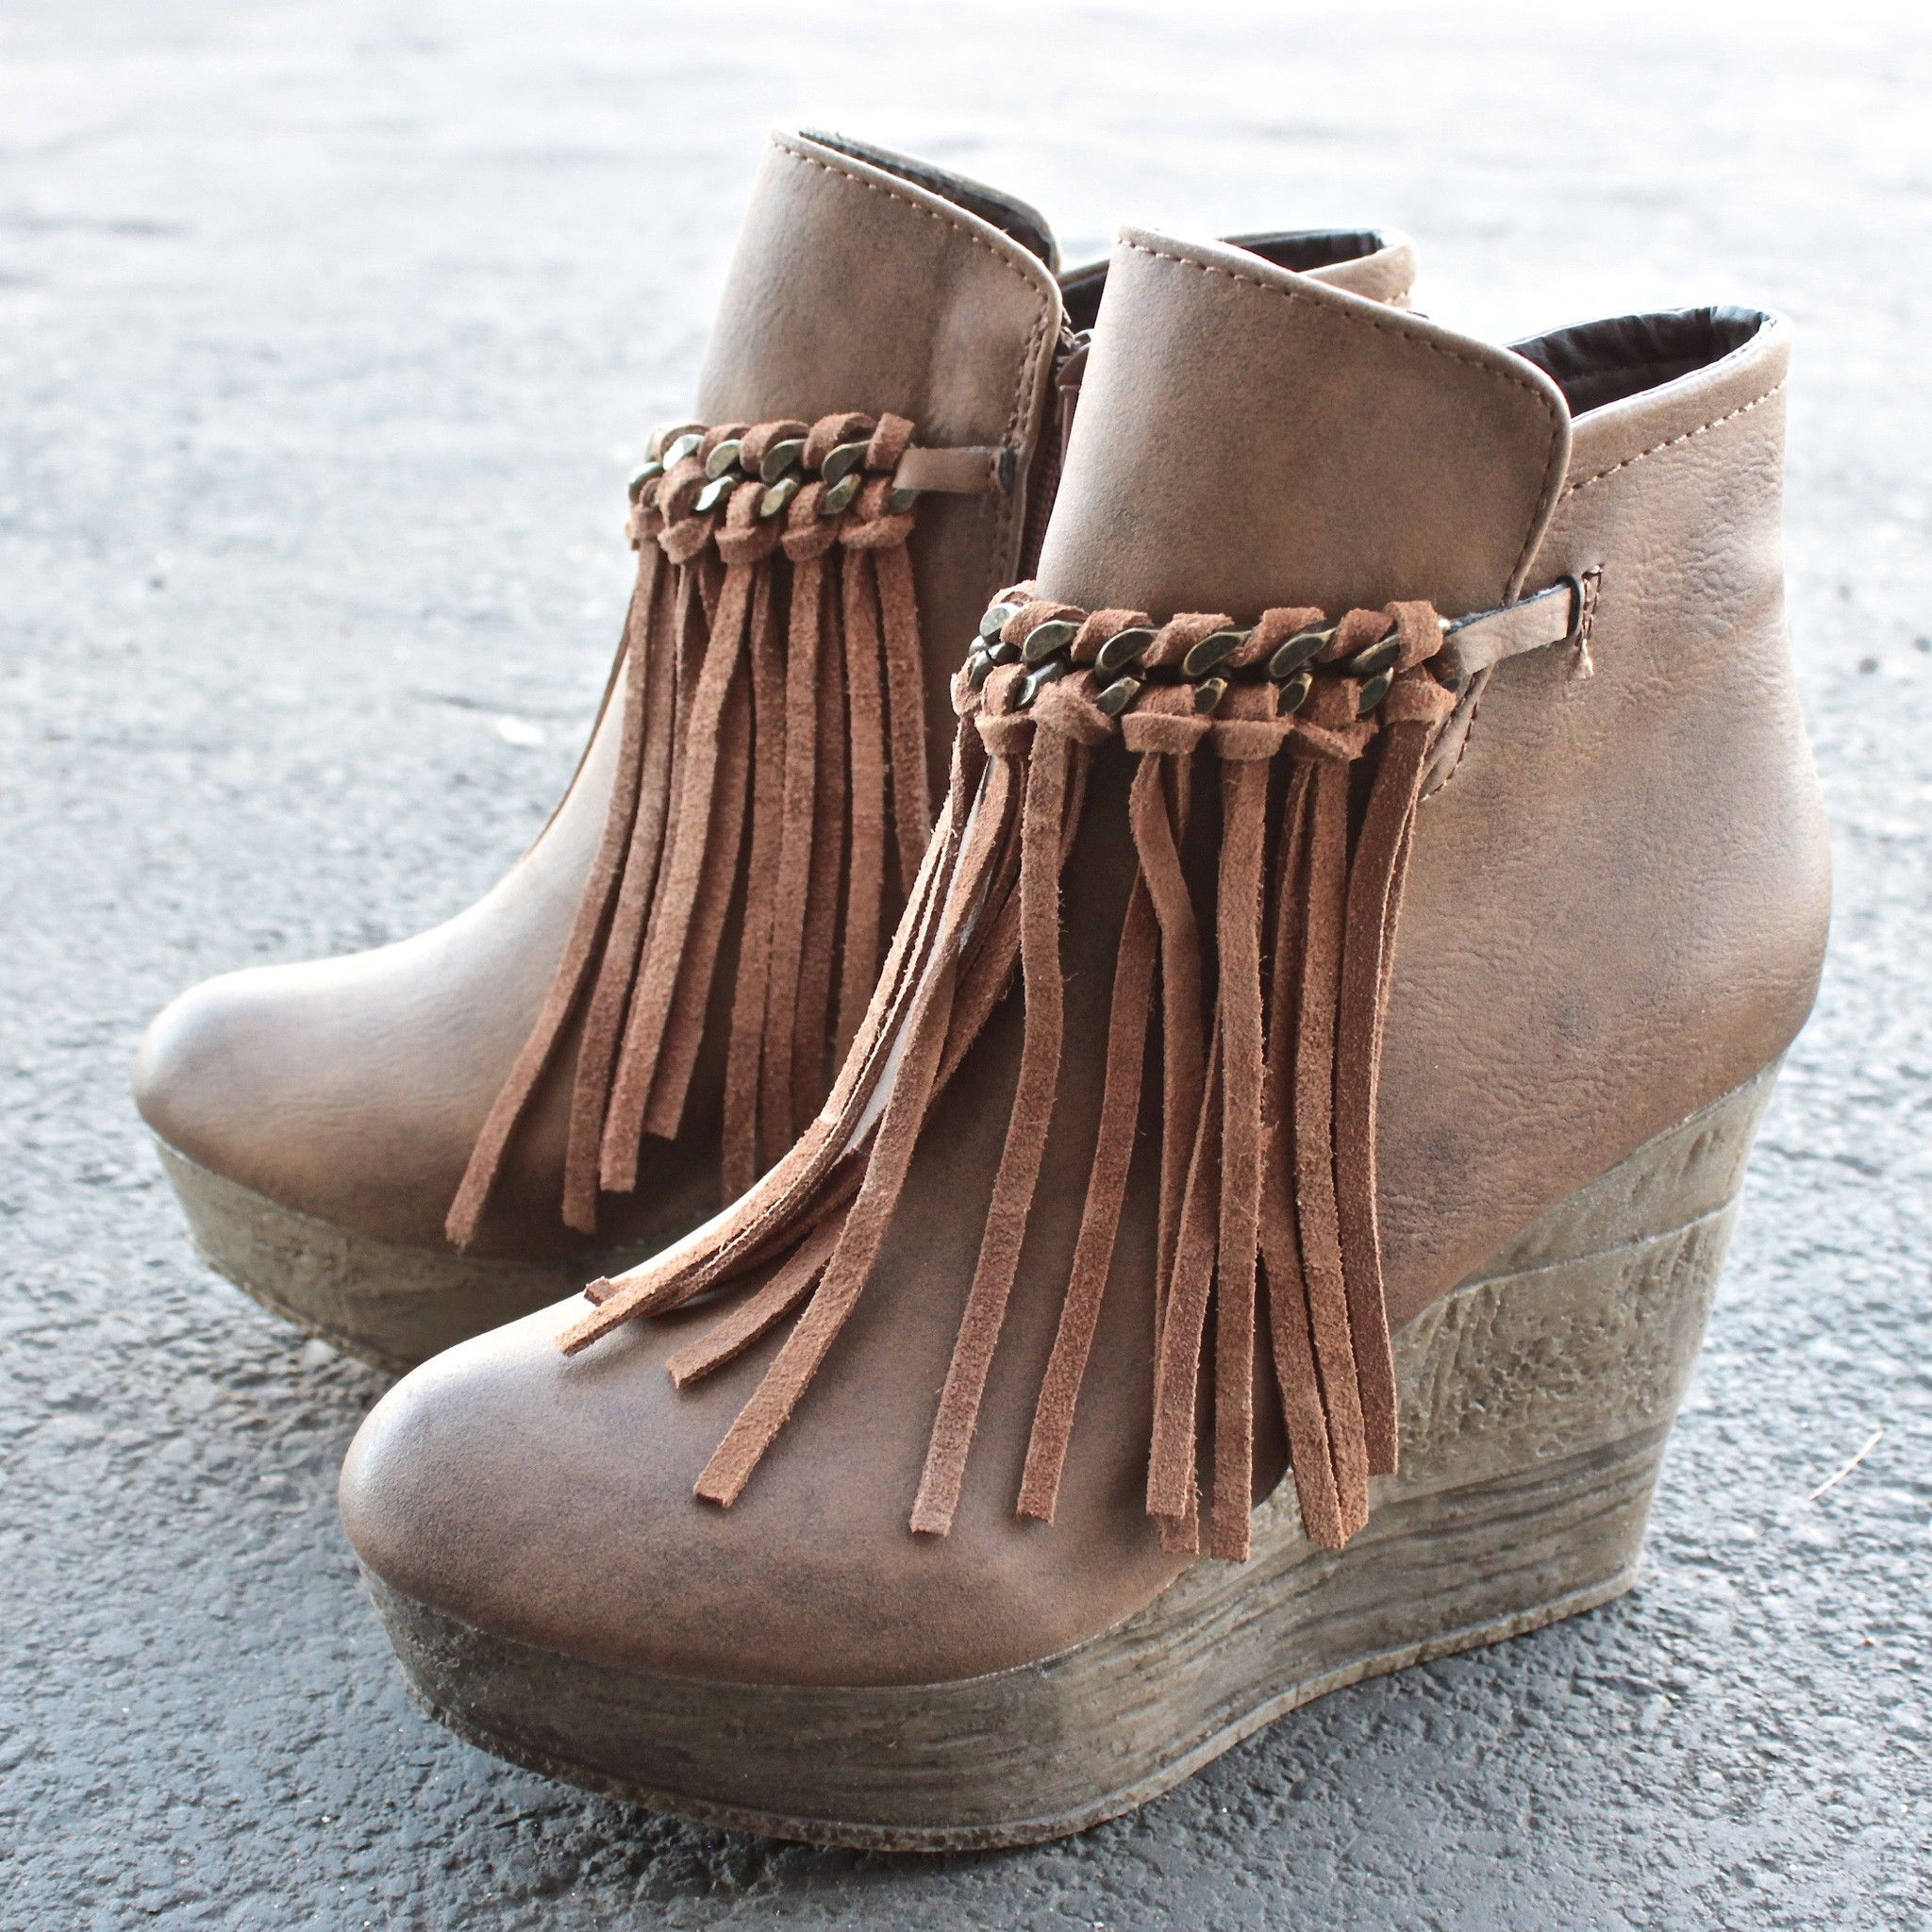 Sbicca vintage collection - zepp wedge fringe ankle bootie - more ...